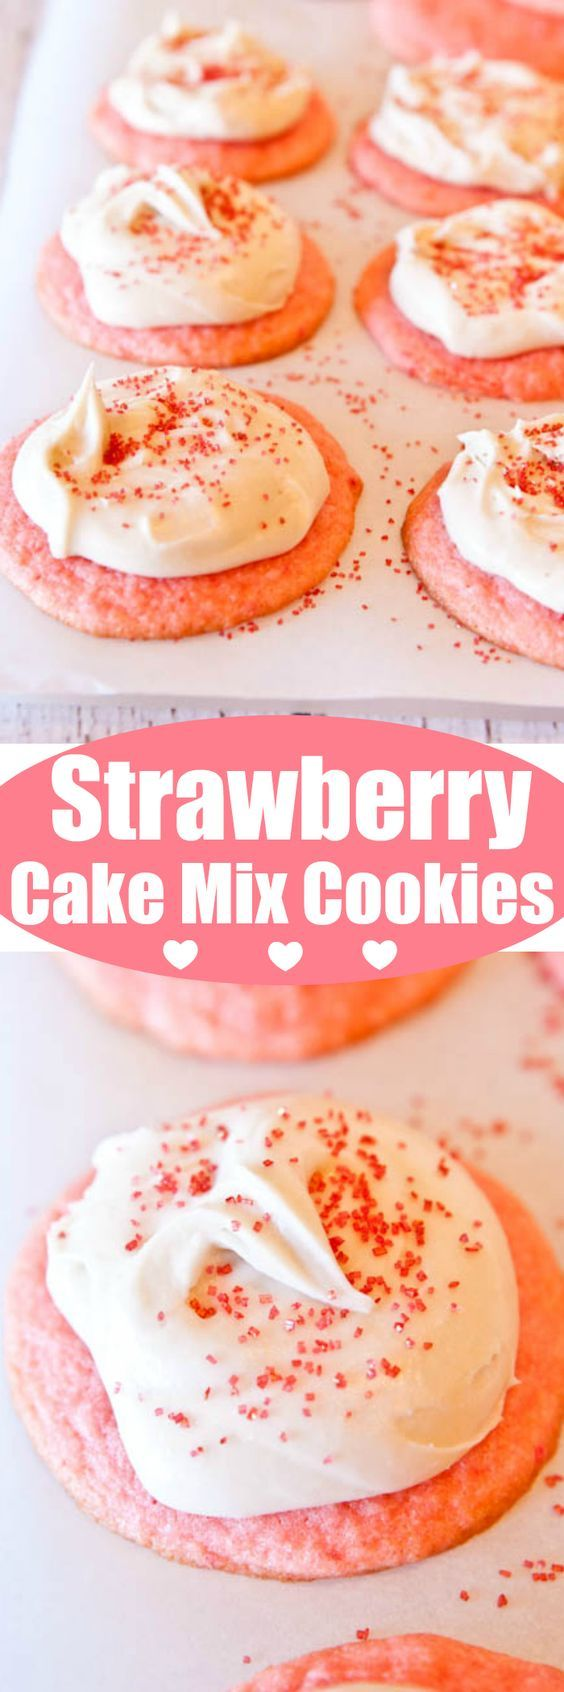 Strawberry Cake Mix Cookies with Vanilla Cream Cheese Frosting - Super soft and tender cookies that just melt in your mouth!! Goofproof cookies everyone loves! Perfect for Valentine's Day!, Mother's Day, or Easter!!